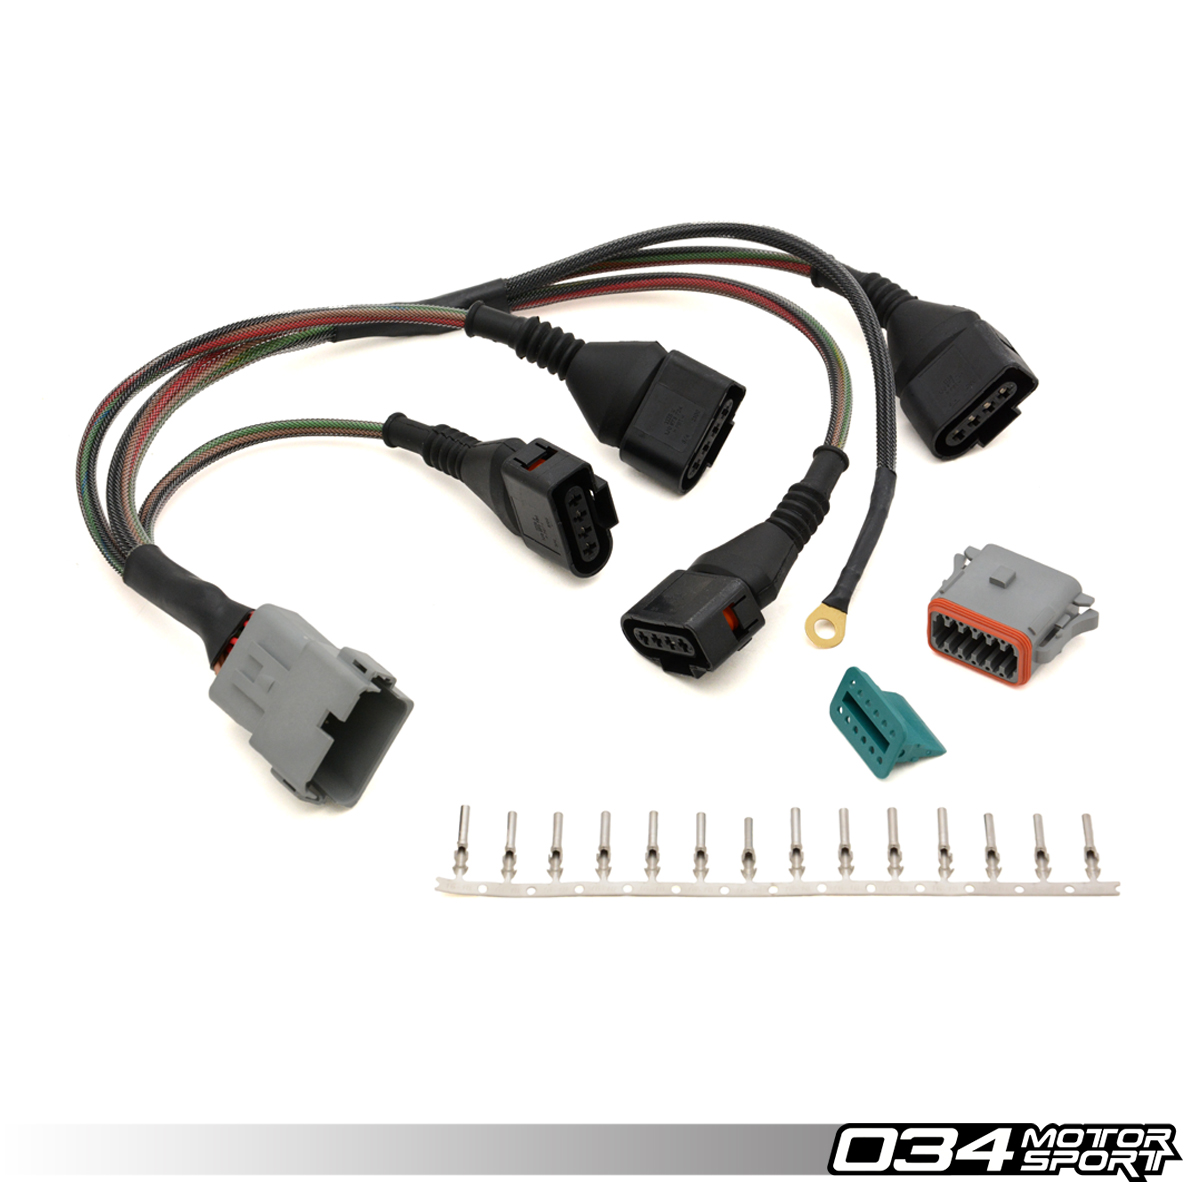 repair update harness audi volkswagen 18t with 4 wire coils 034motorsport 034 701 0004 2 repair update harness, audi volkswagen 1 8t with 4 wire coils 2002 Jetta 1.8T Gas Mileage at soozxer.org